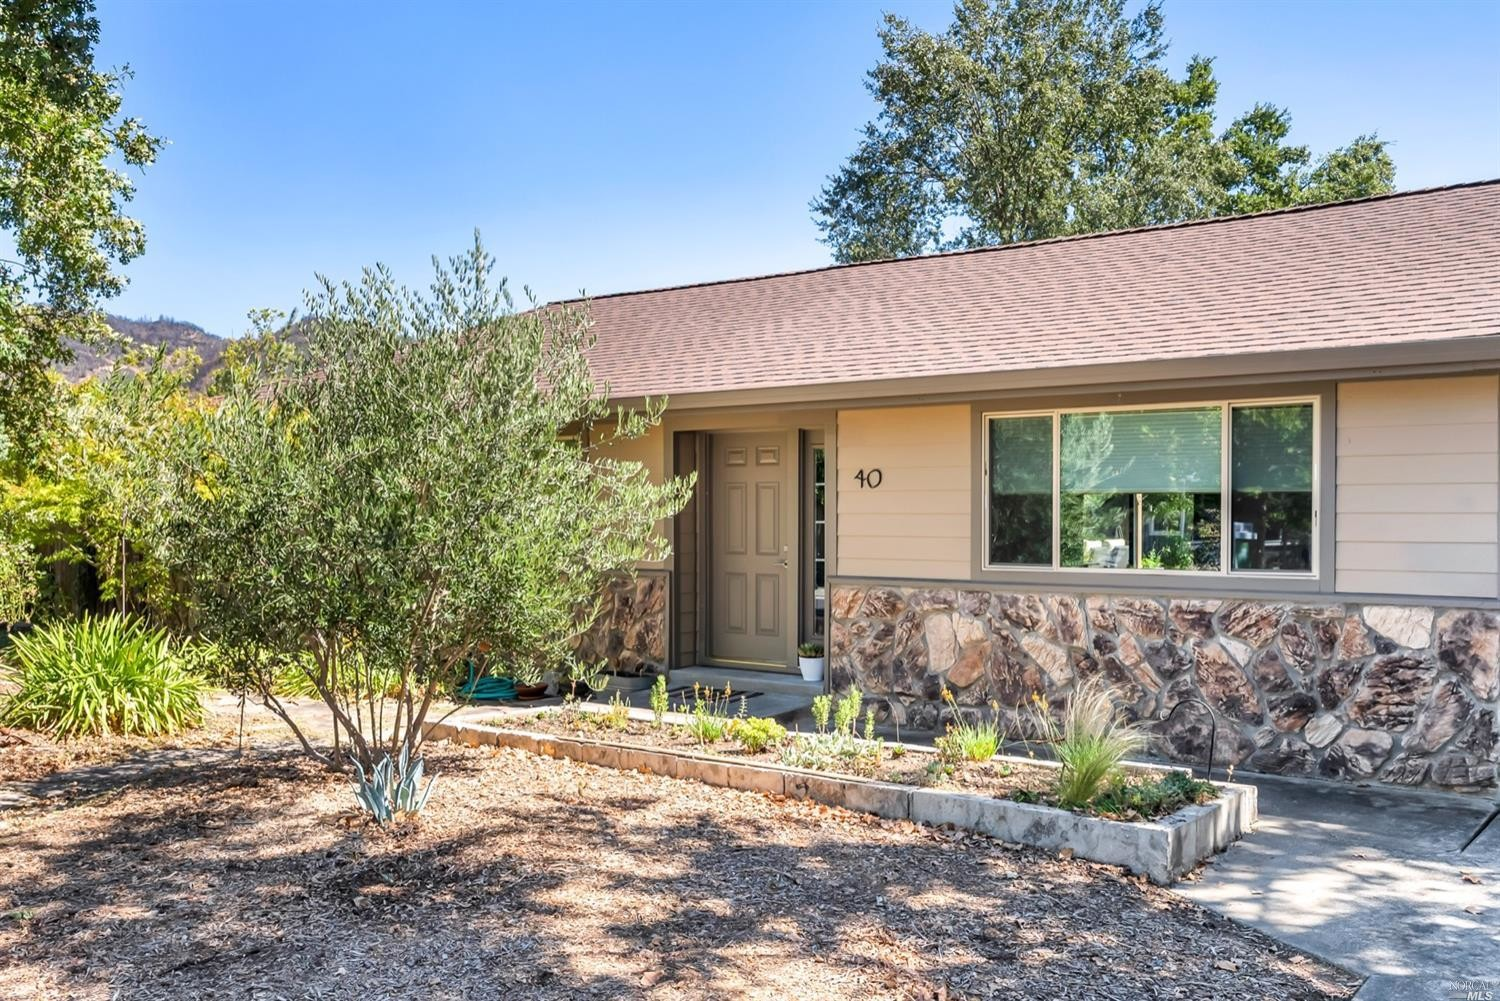 3-Bedroom House In Grand View